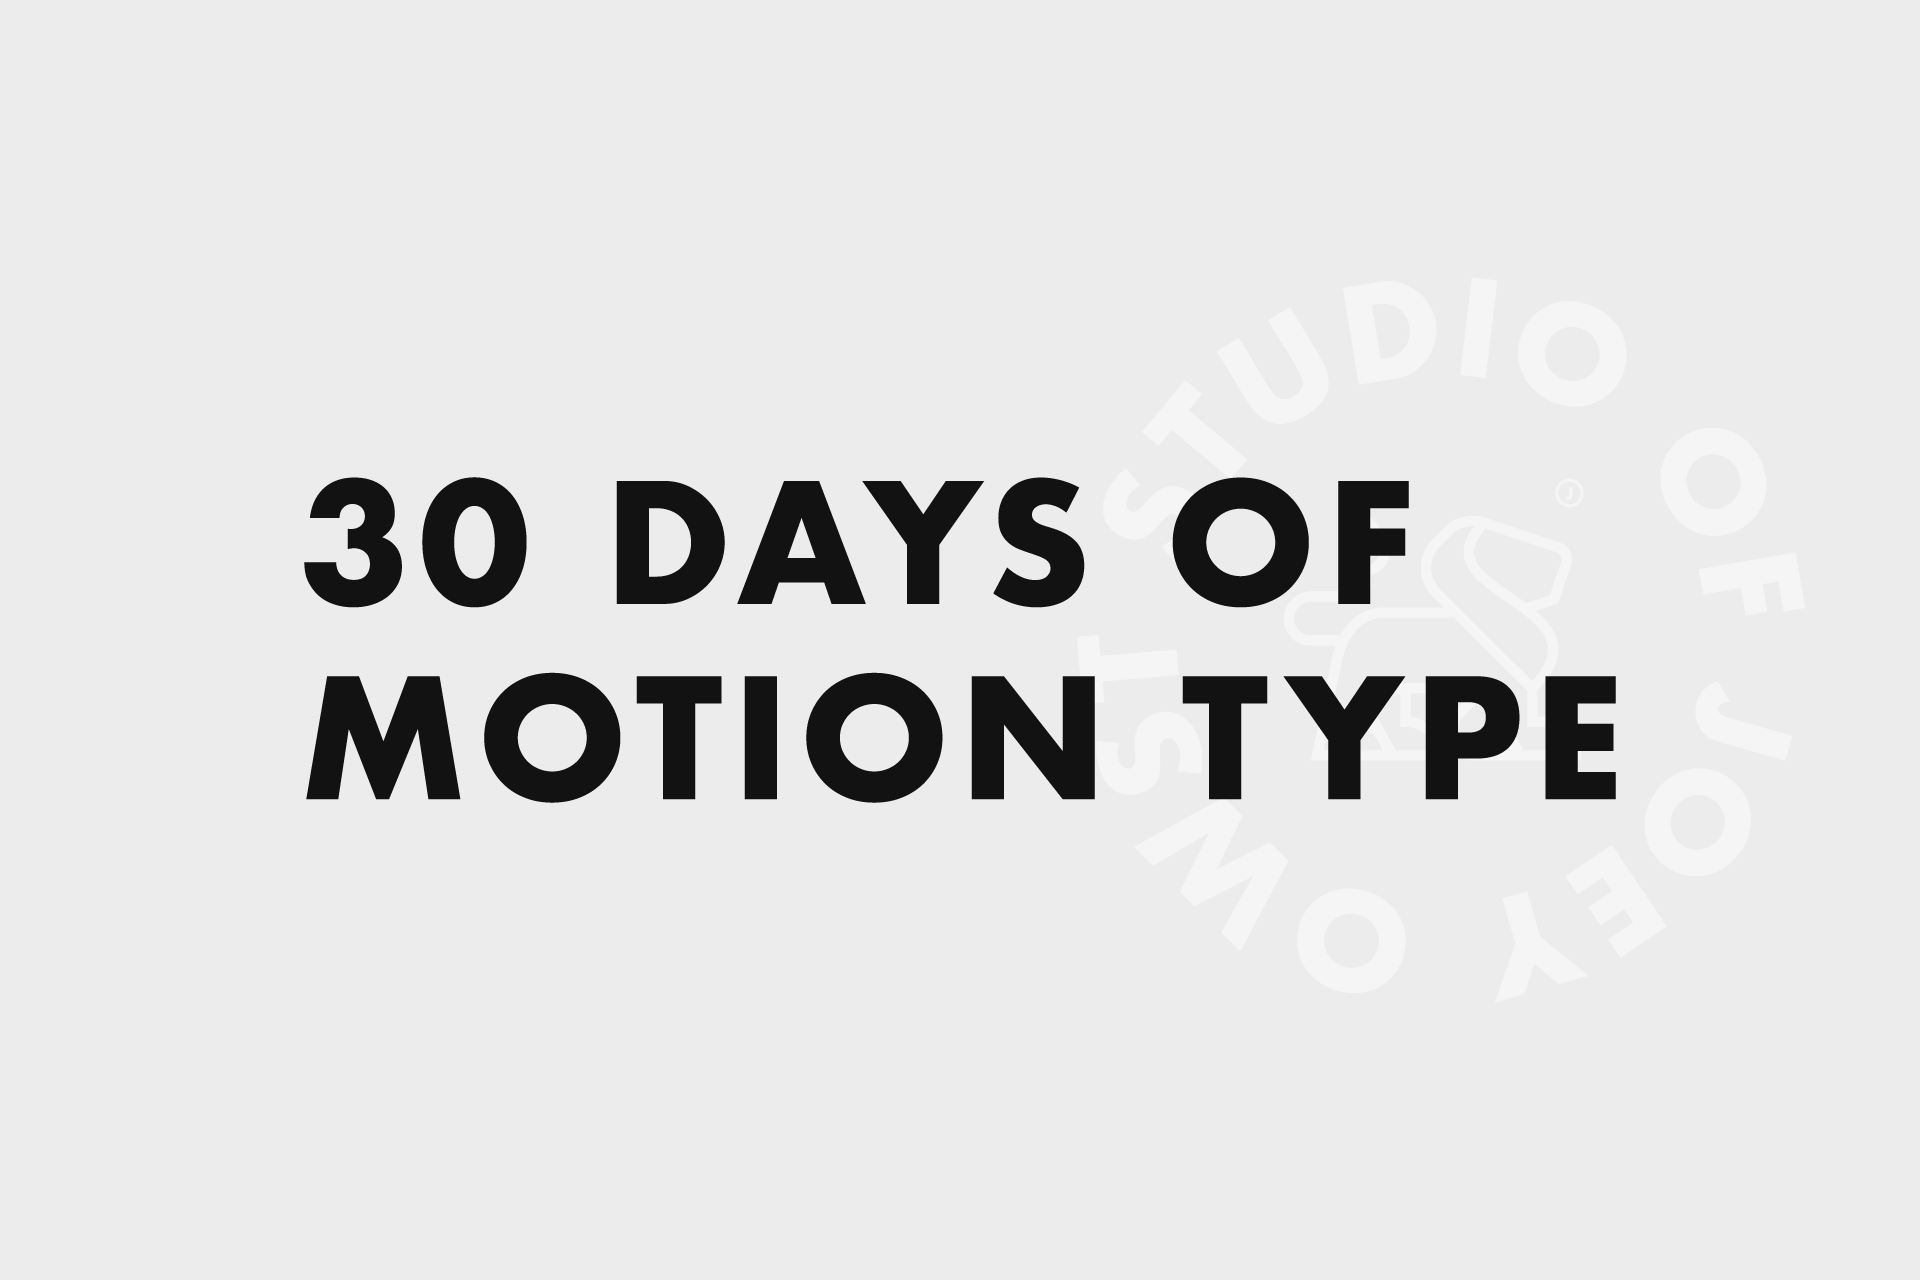 JO_30-Days-of-Motion-Type_COVER